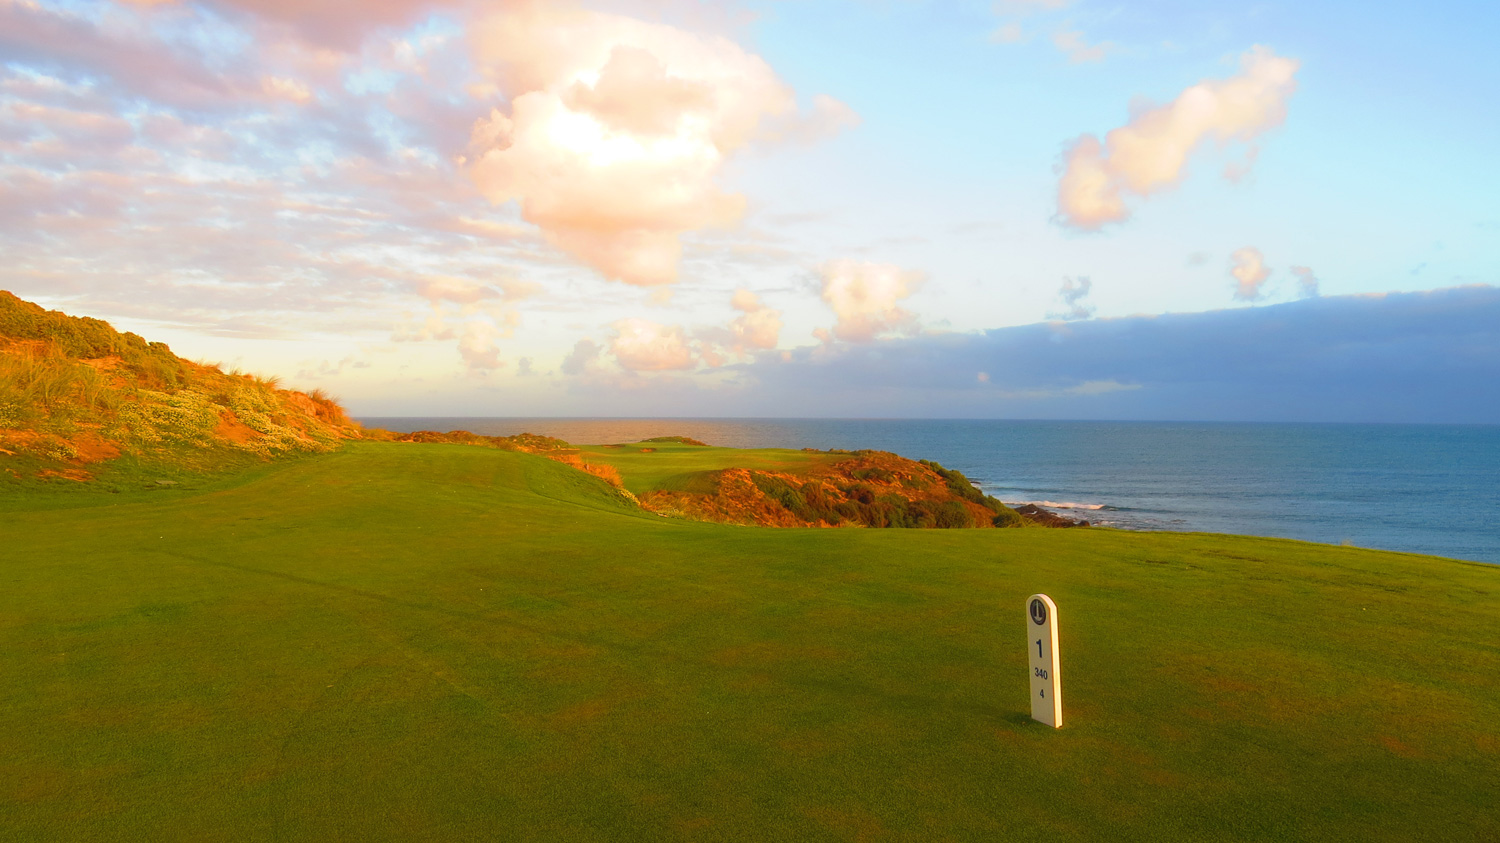 Cape Wickham - 1st Hole, Par 4 | Image via Cape Wickham Links